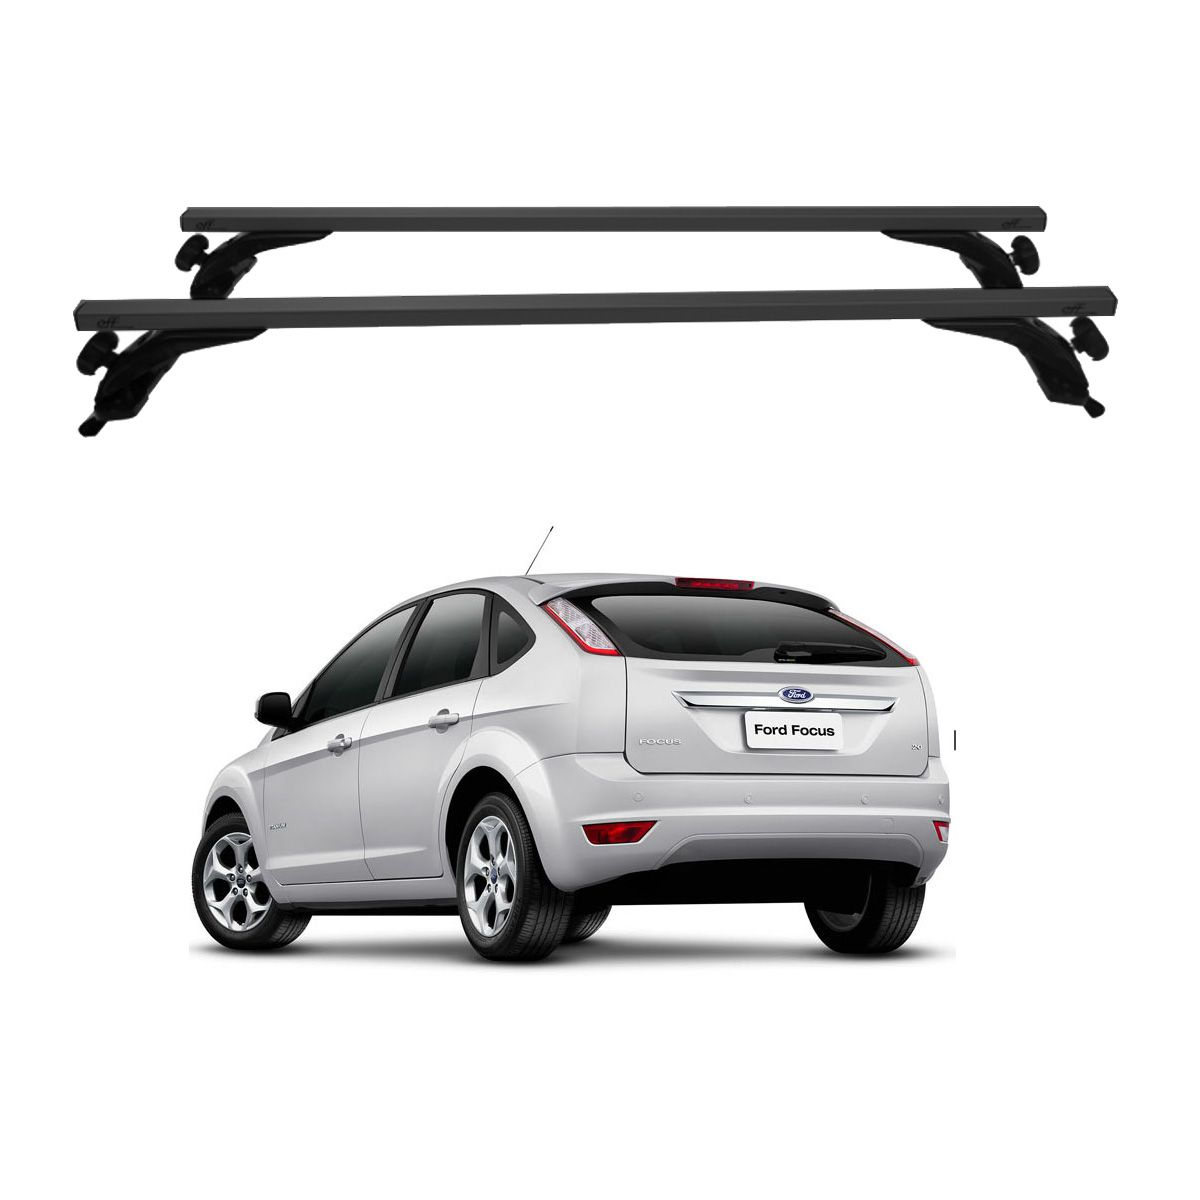 Rack Travessa de Teto Alumínio Preto Ford Focus Hatch